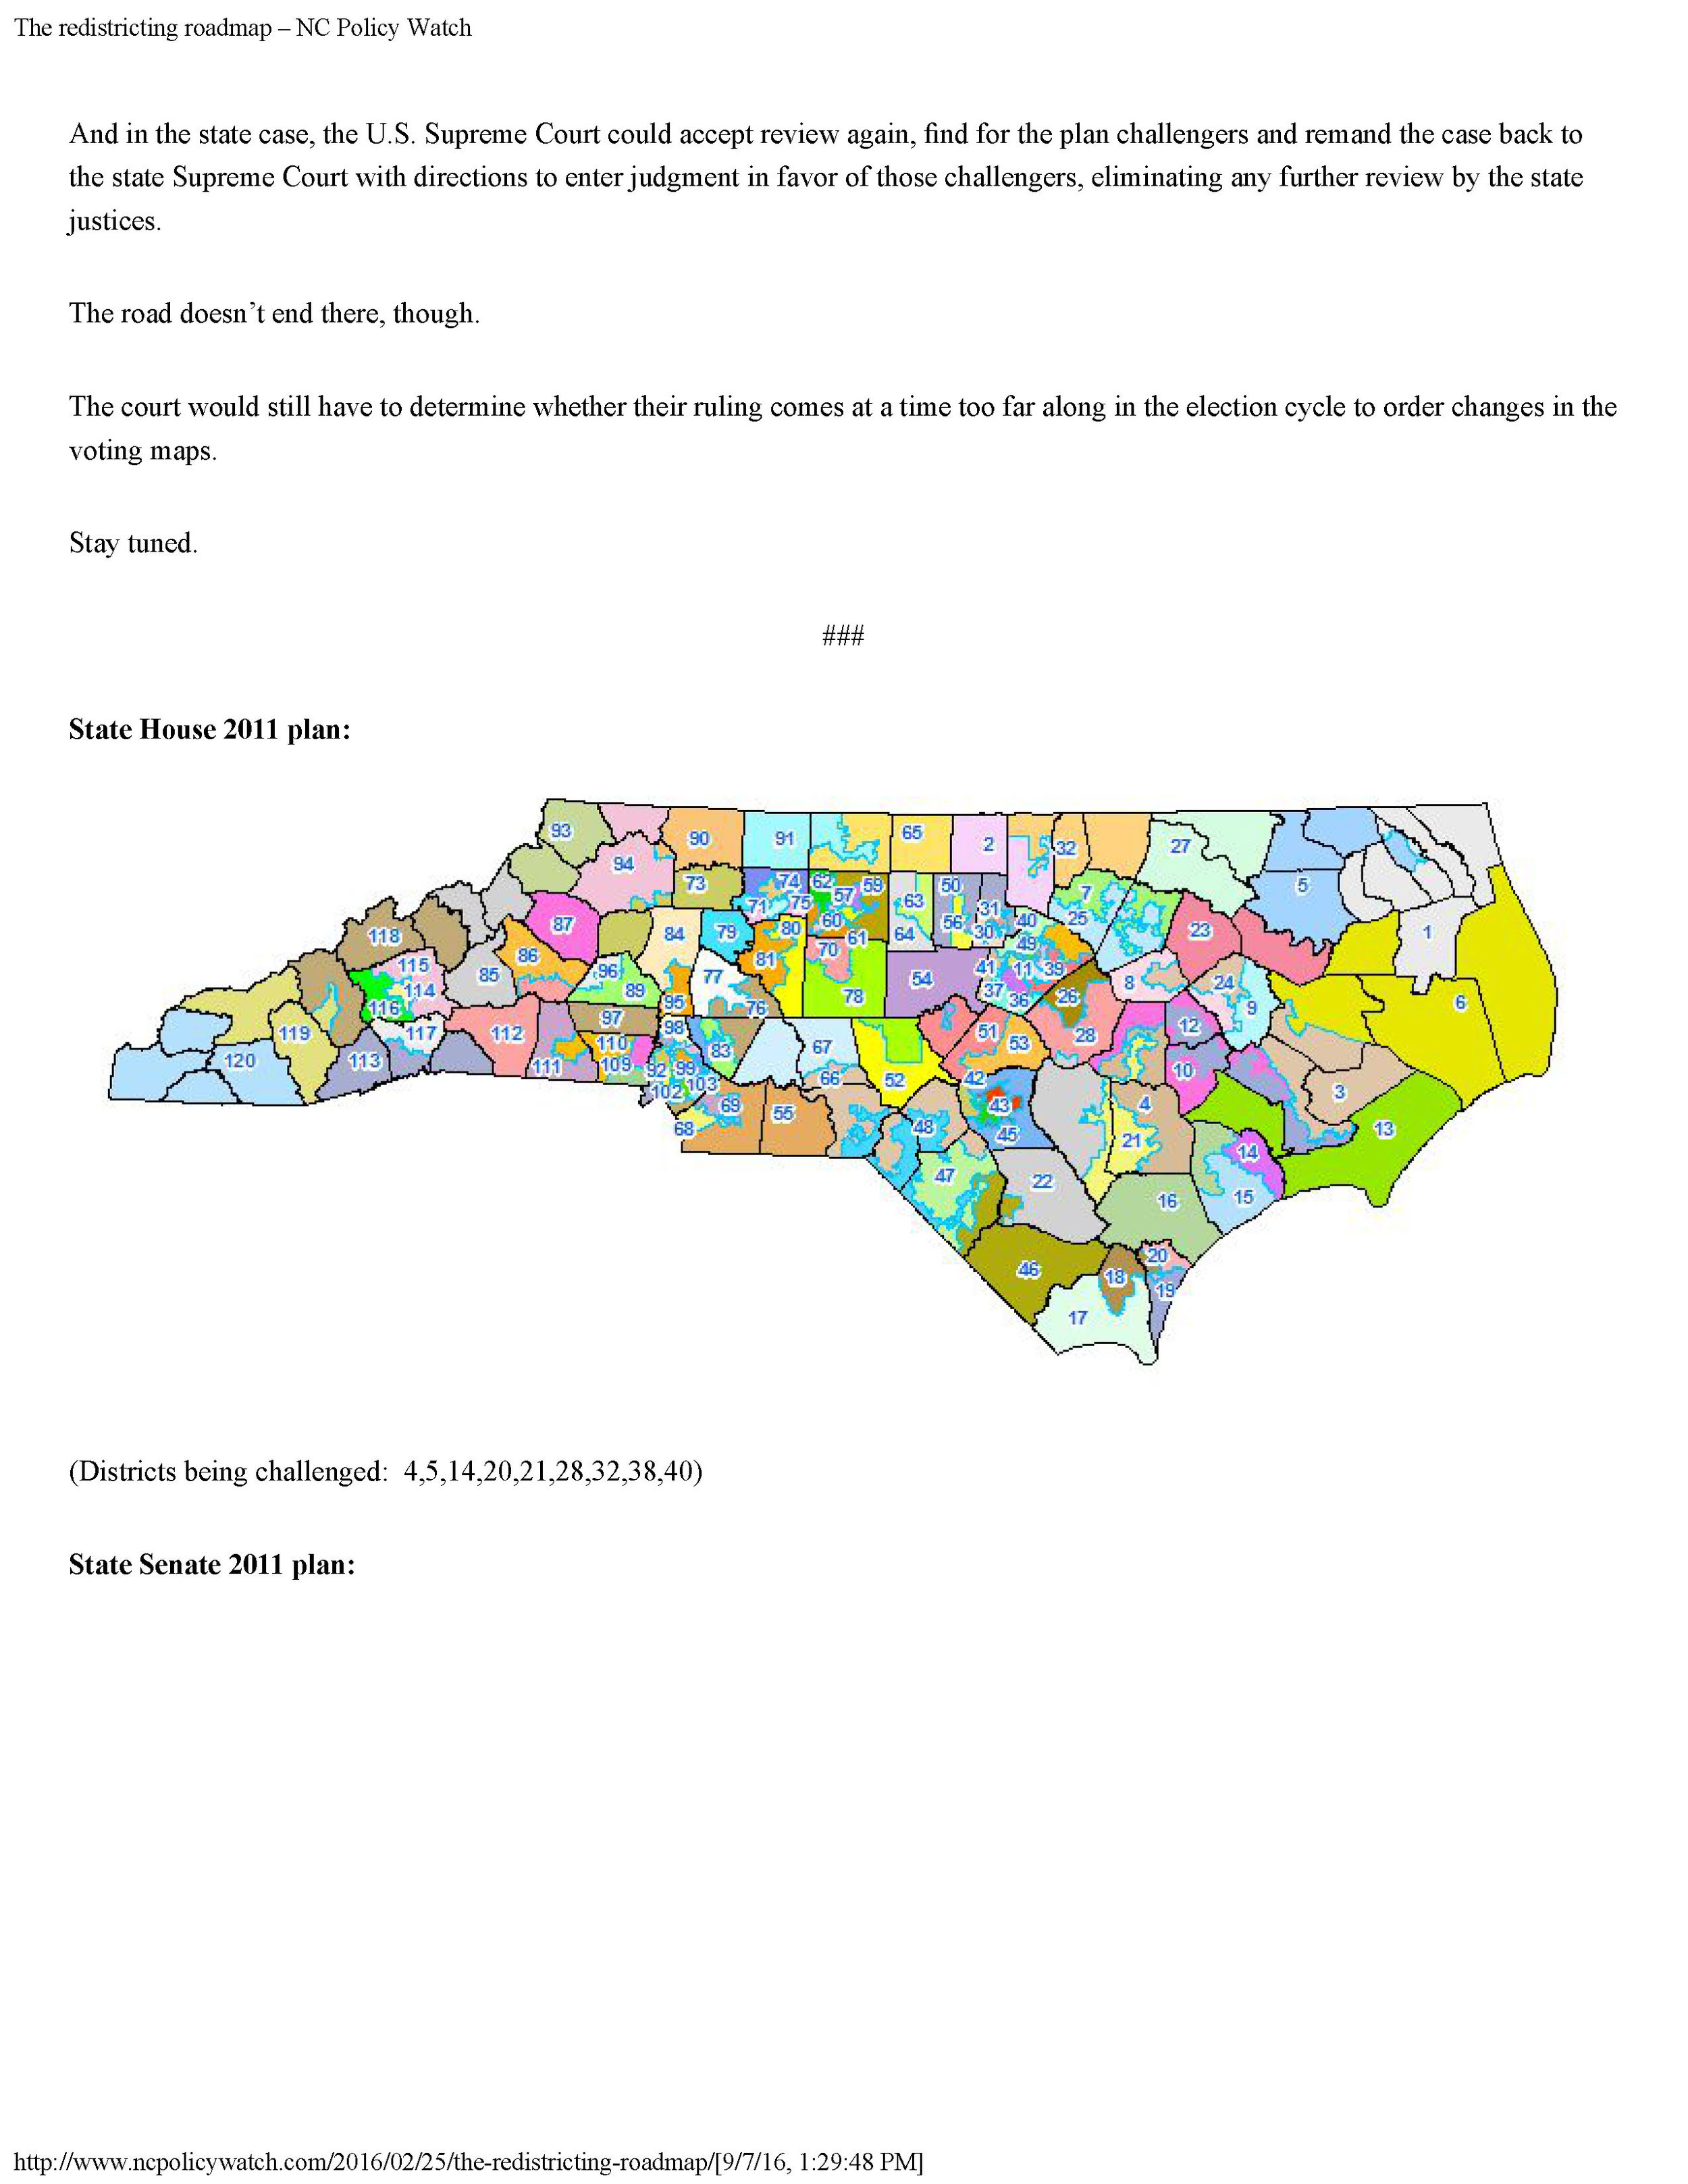 Sharon McCloskey - The redistricting roadmap – NC Policy Watch_Page_4.jpg